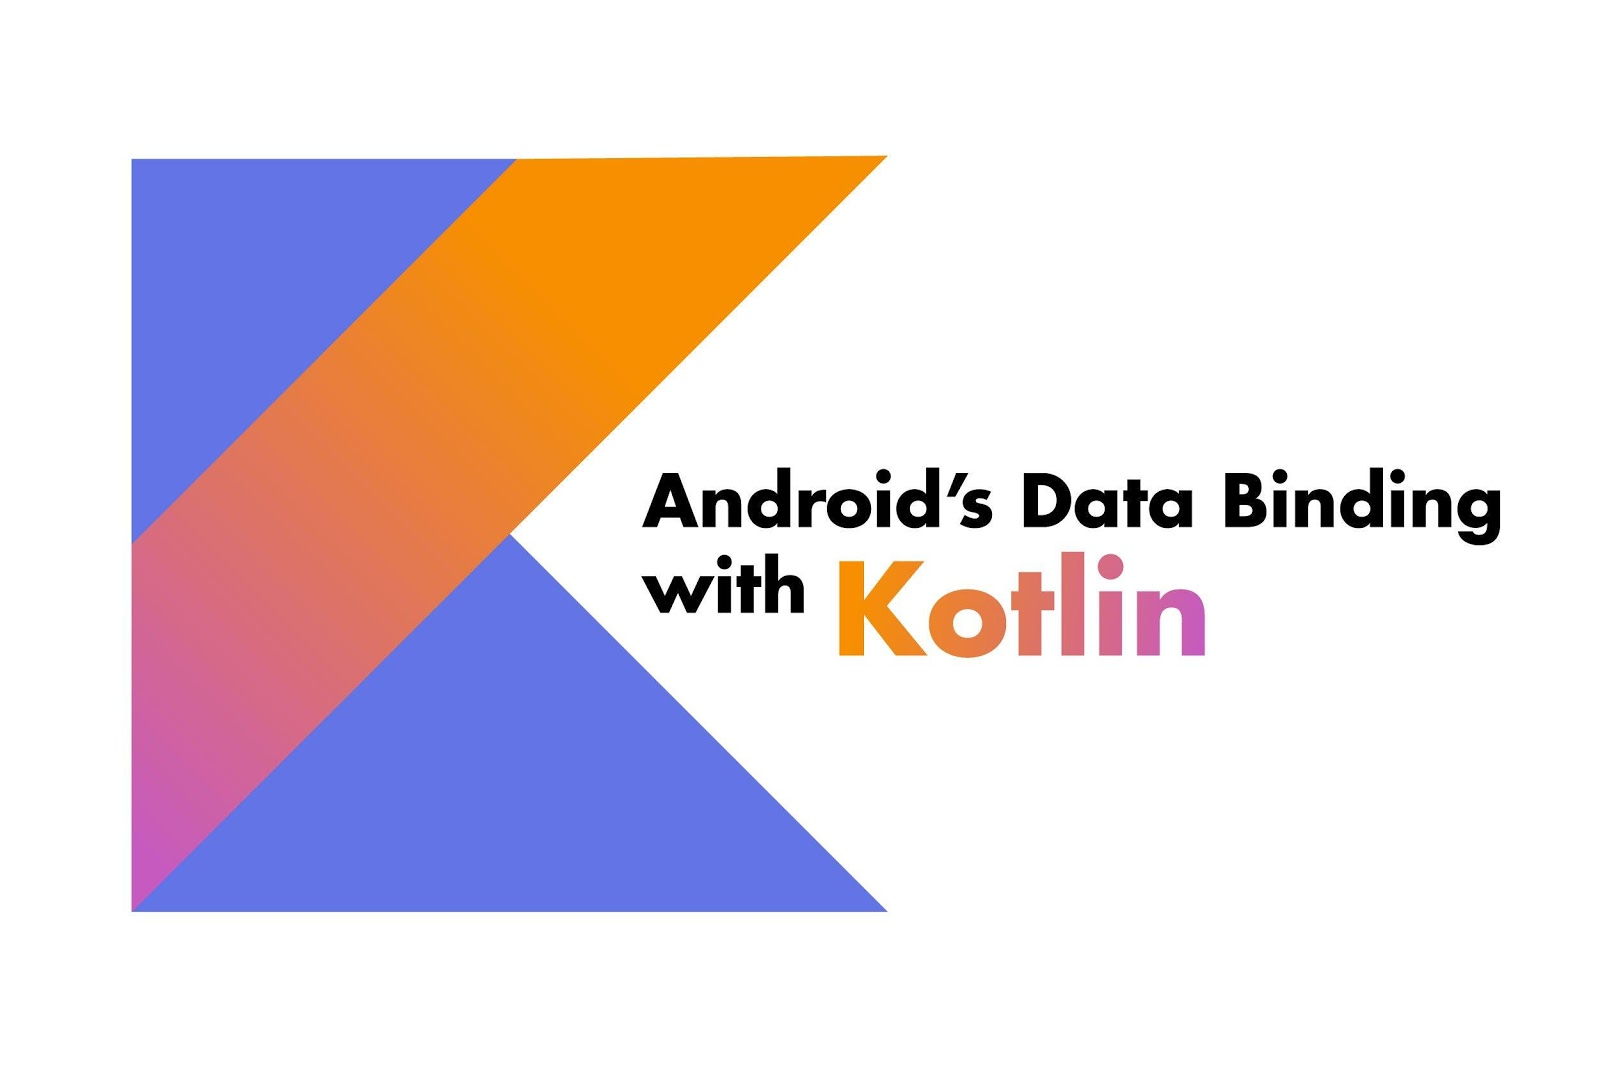 Data Binding with Kotlin in Eventyay Attendee